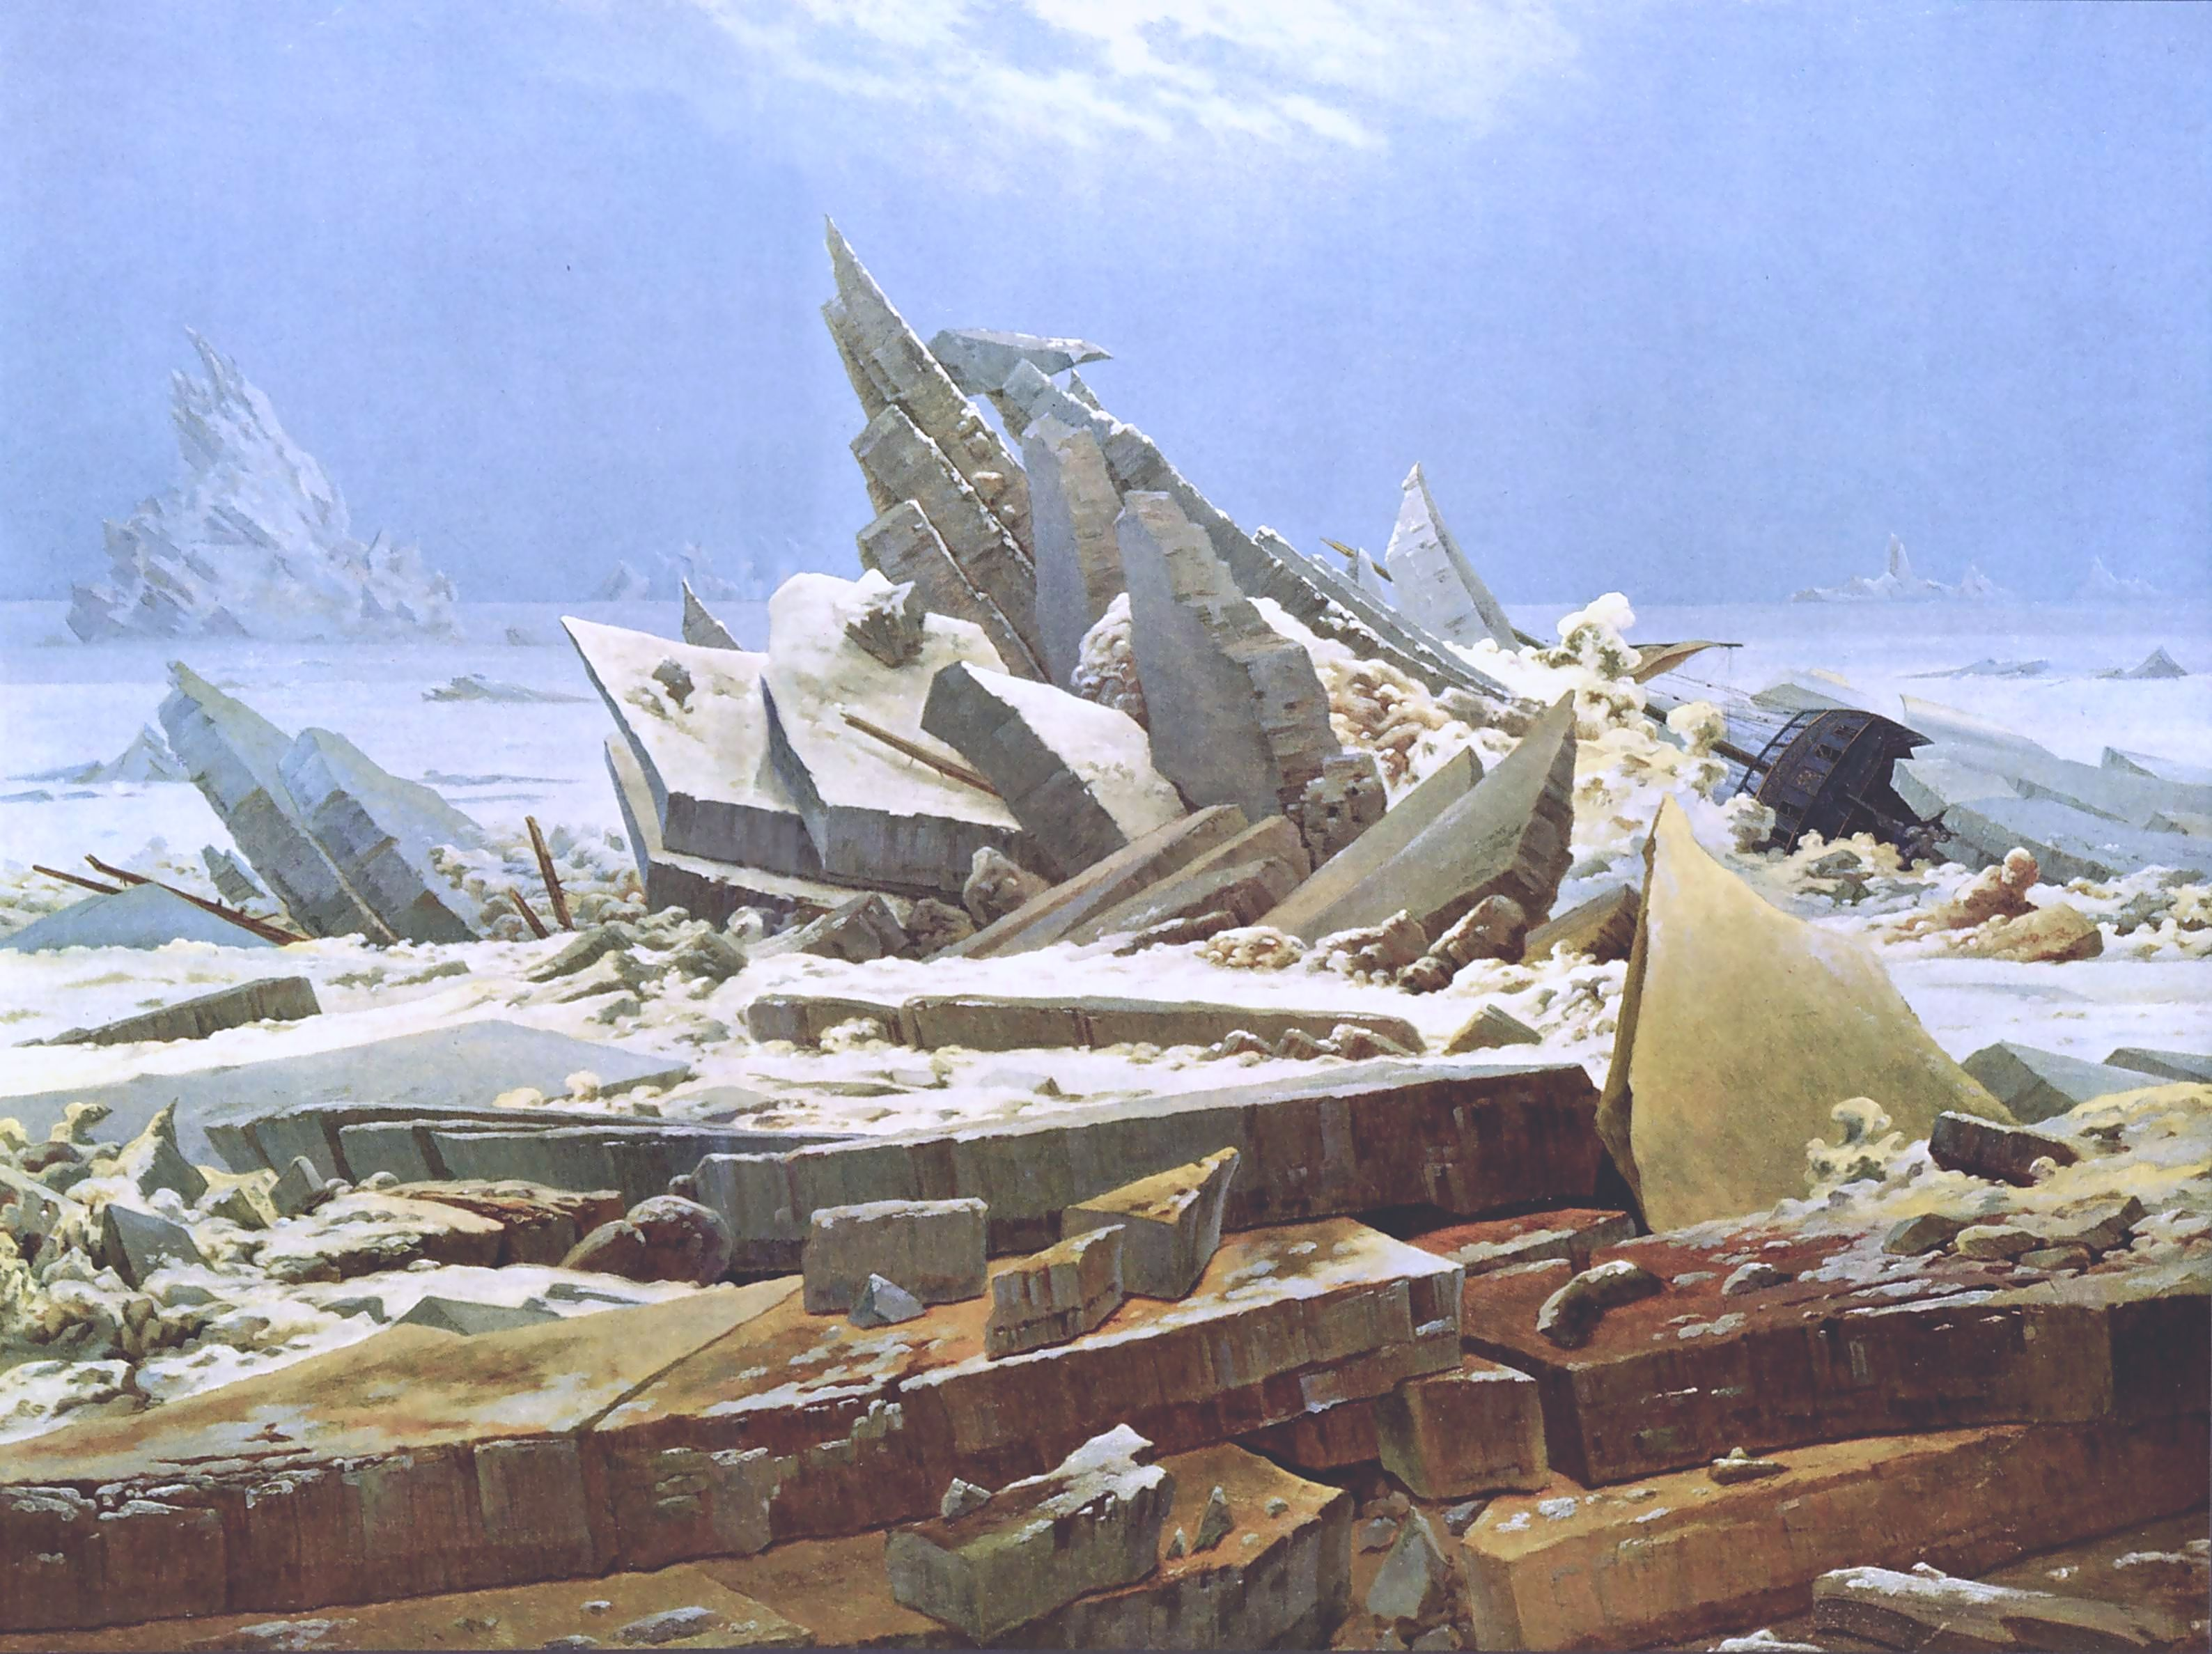 https://upload.wikimedia.org/wikipedia/commons/0/0c/Caspar_David_Friedrich_-_Das_Eismeer_-_Hamburger_Kunsthalle_-_02.jpg